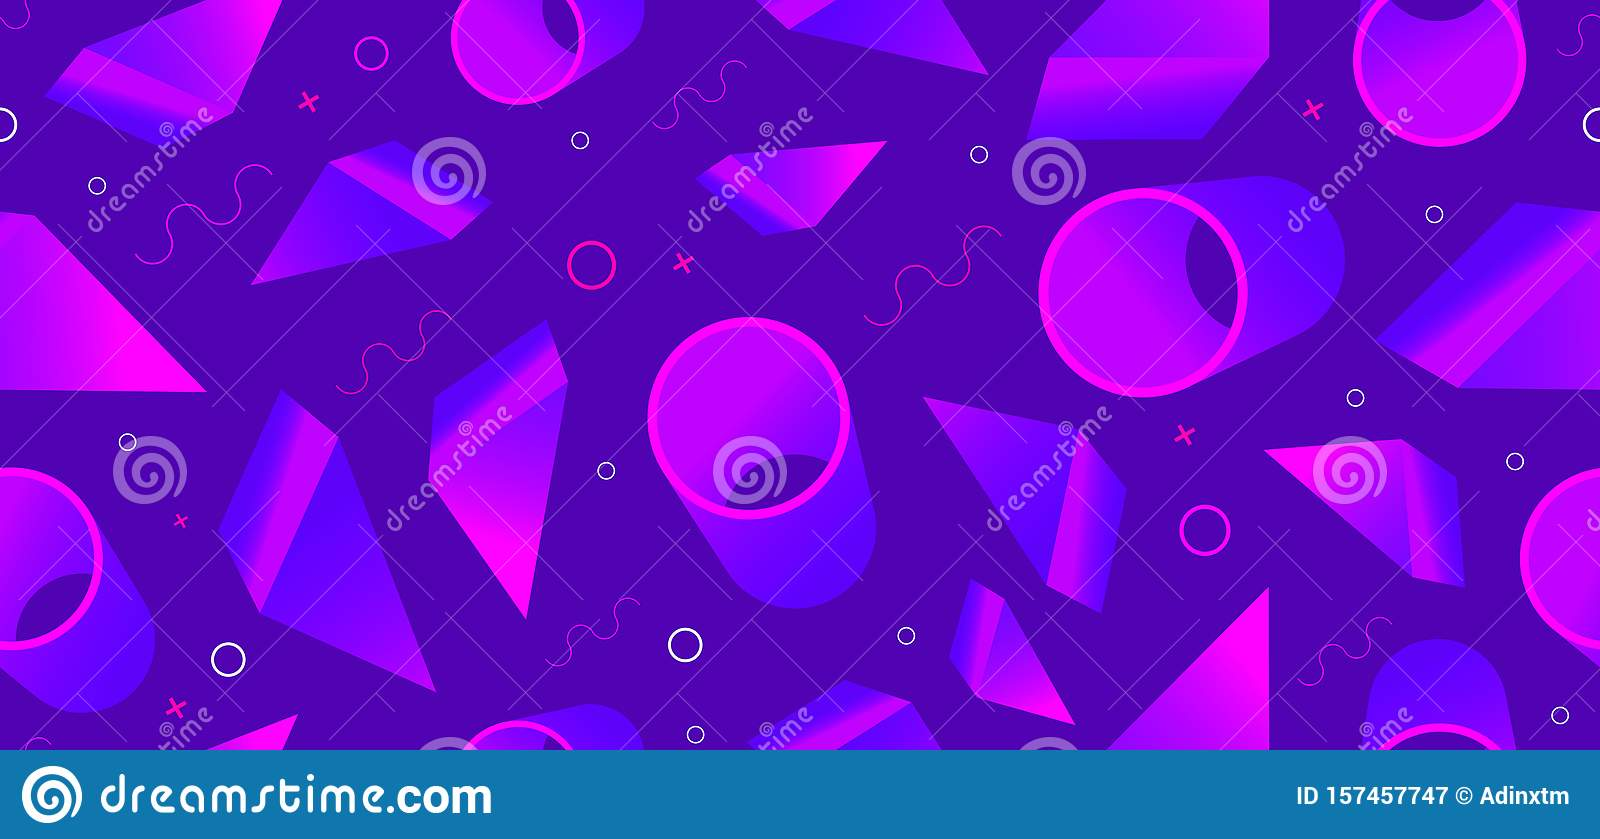 Background Seamless Pattern With Abstract Shapes Vector